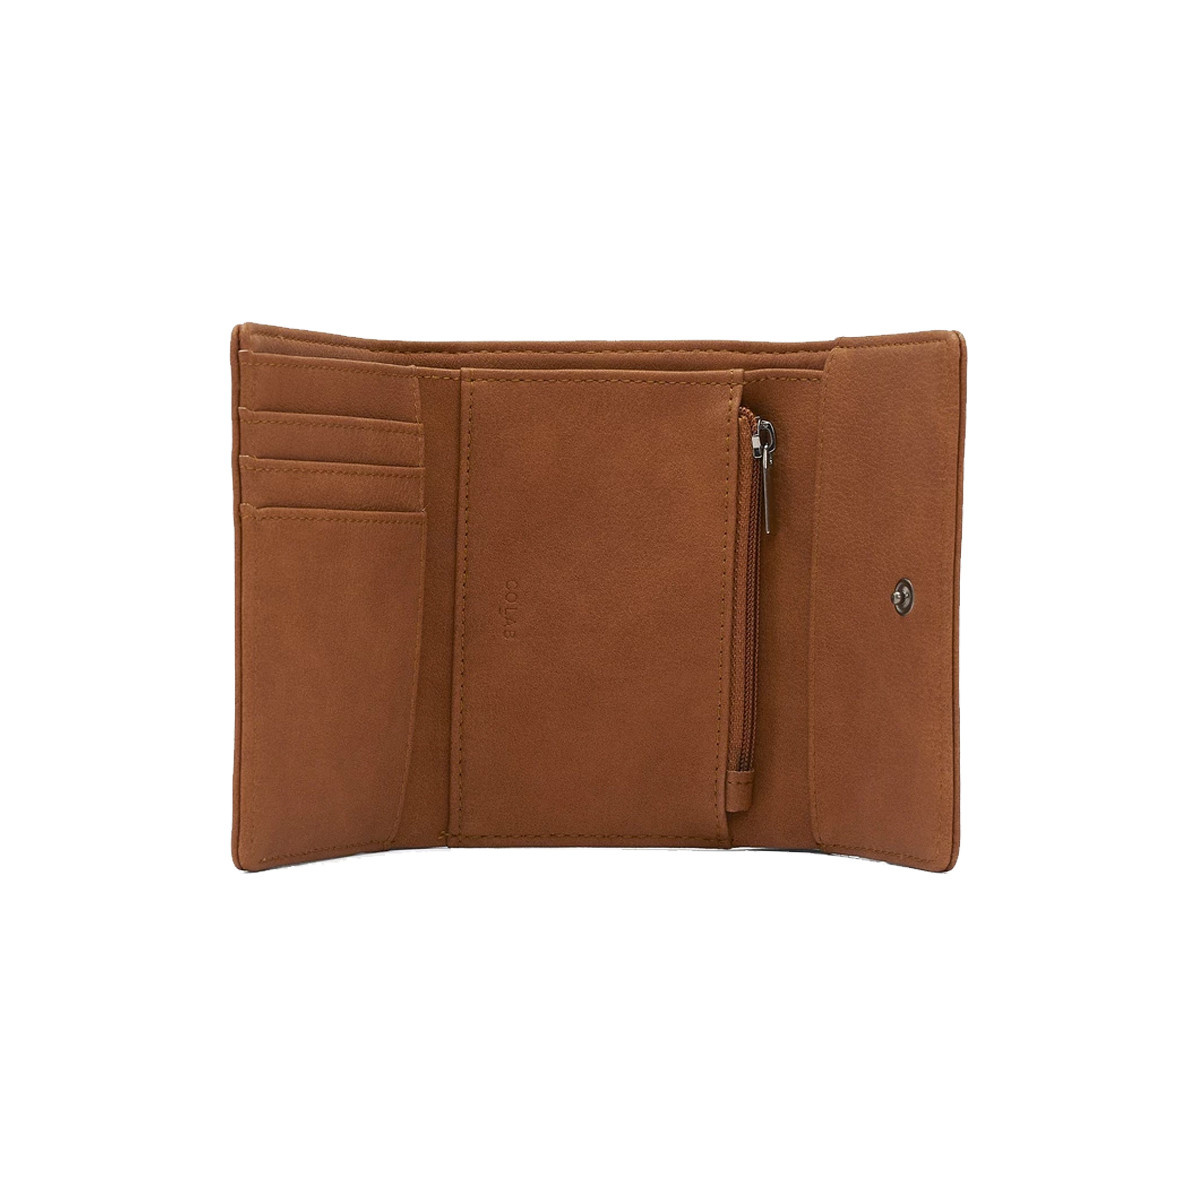 Colab Colab Crafted Vegan Leather Wallet